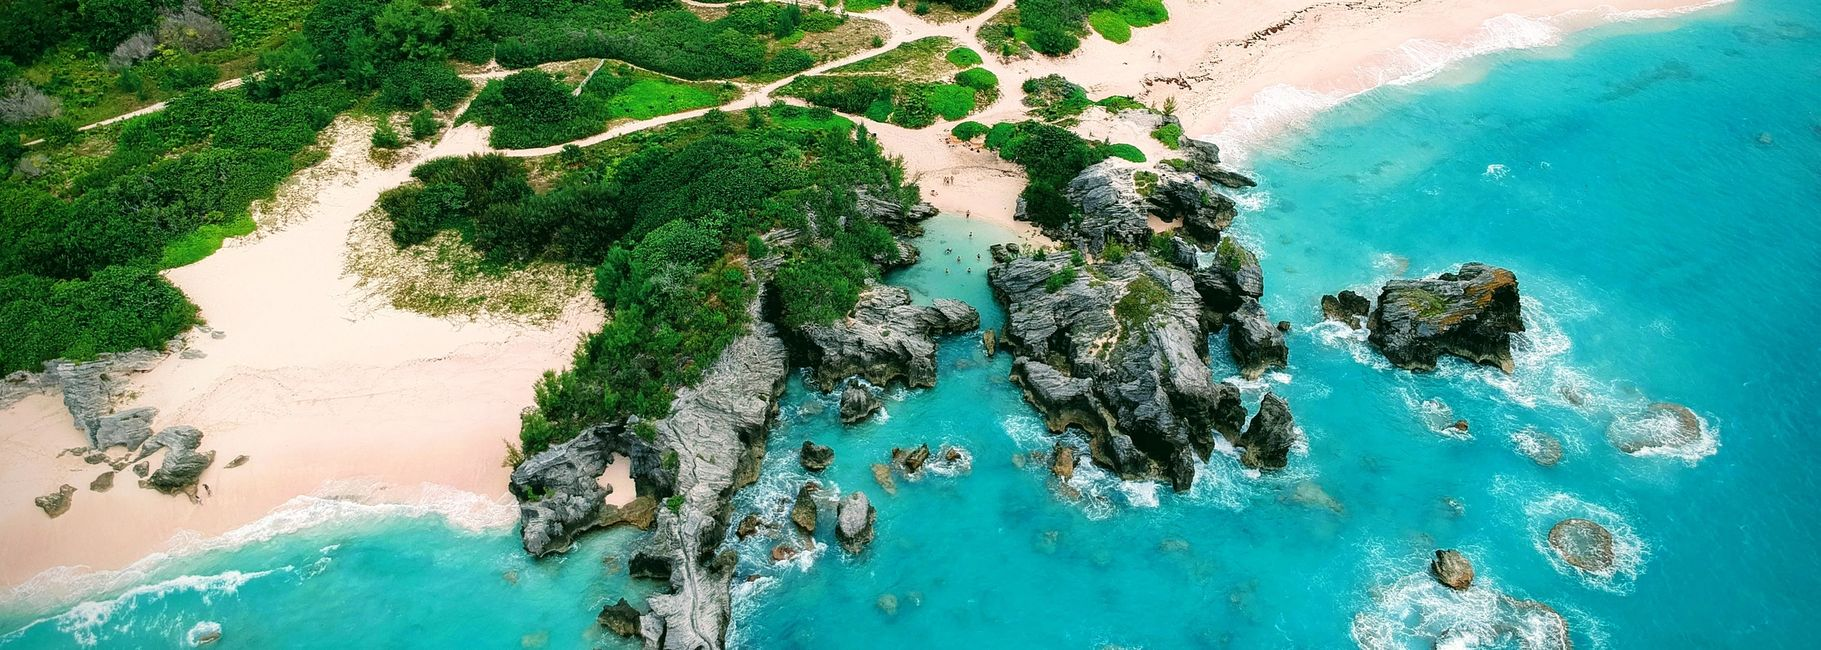 Upper view of Jobson's Cove in Bermuda.